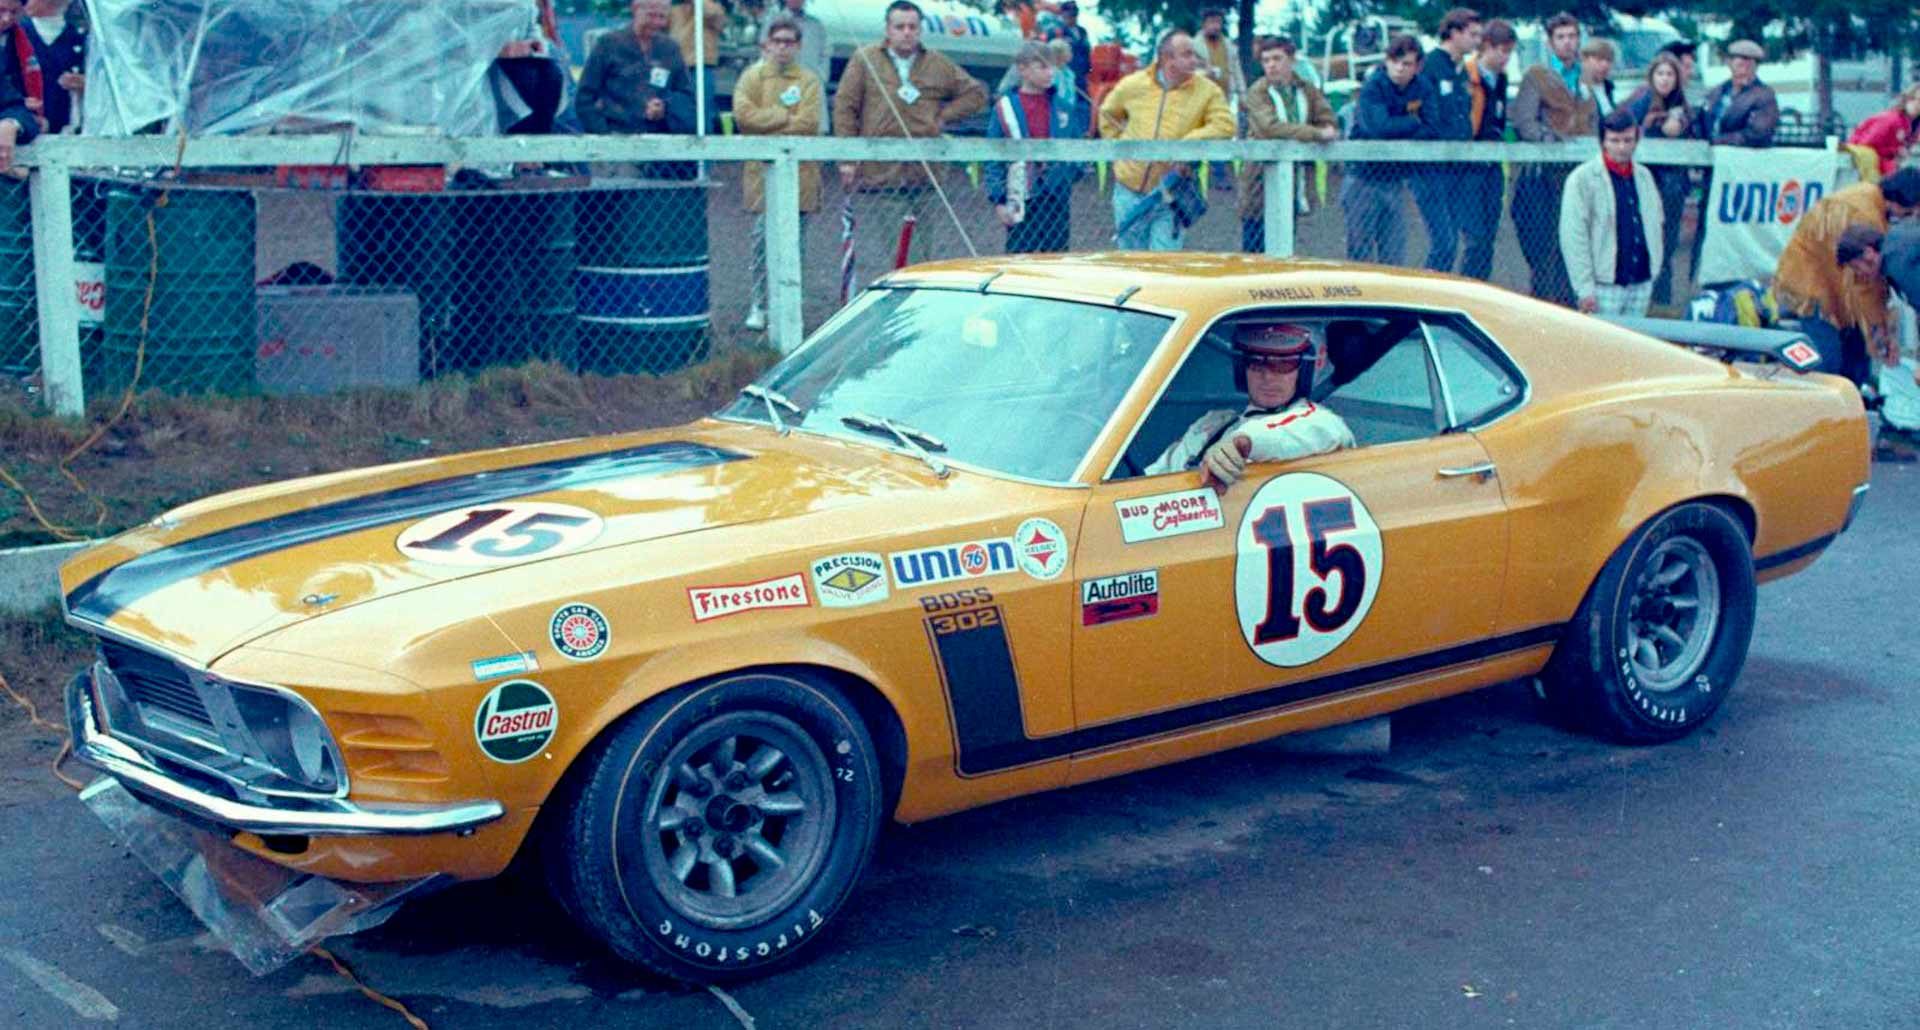 Parnelli Jones is pictured here cir. 1970 with considerable confidence. The Boss 302 Mustang was winning, and Jones was more than a little responsible.